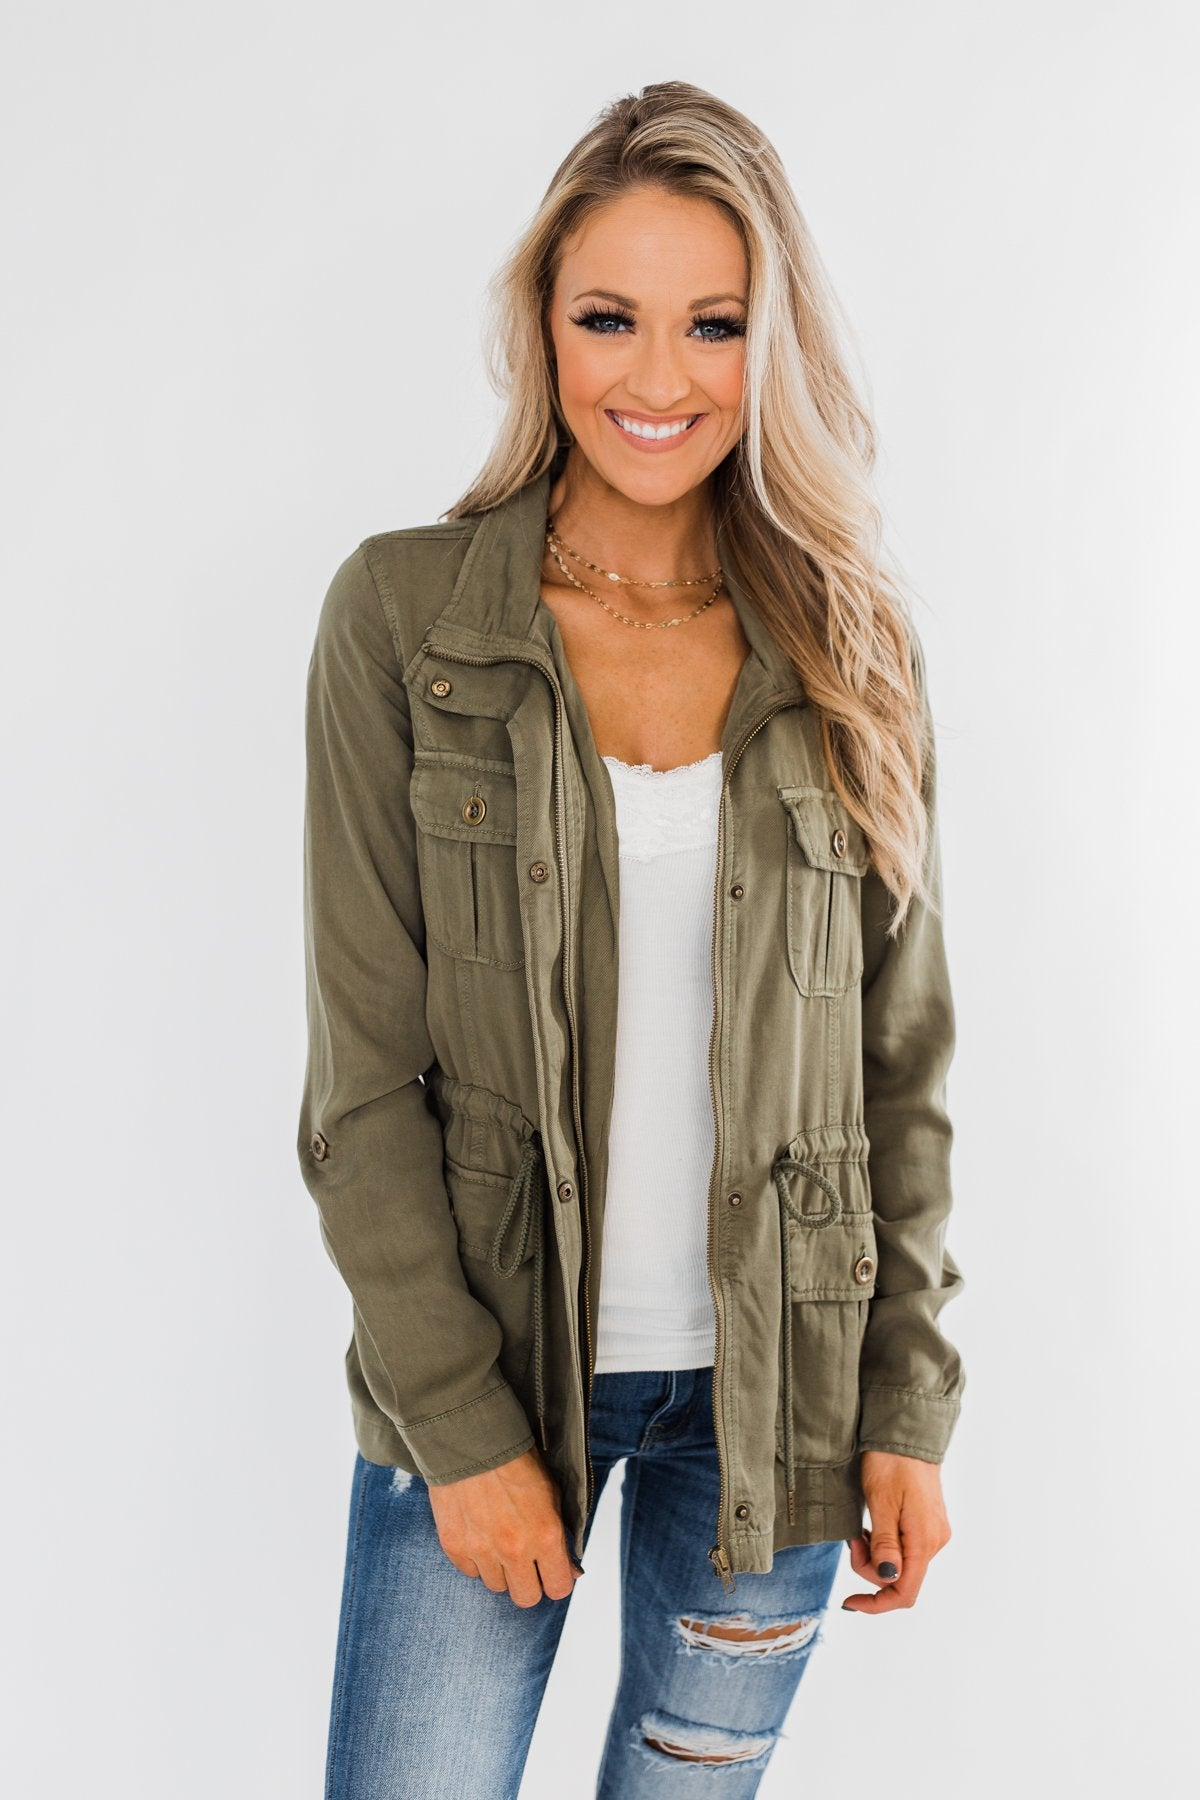 Carried Away Drawstring Waist Jacket- Olive